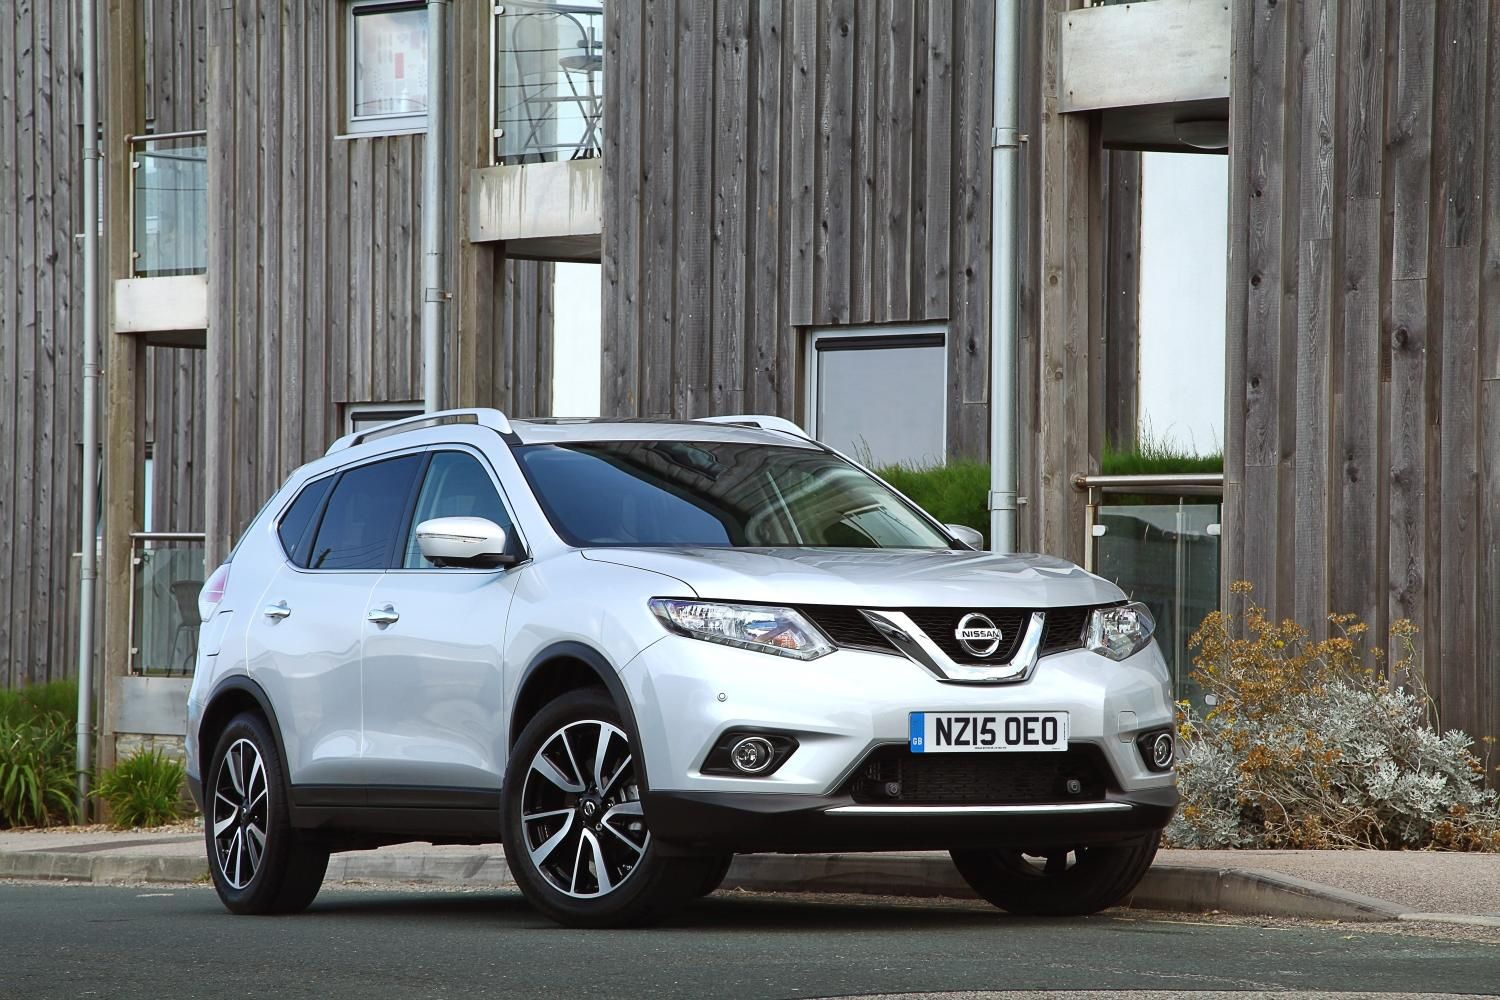 Nissan Introduces New Petrol Engine For X Trial Uk Nissan Nissan Cars Cars Uk